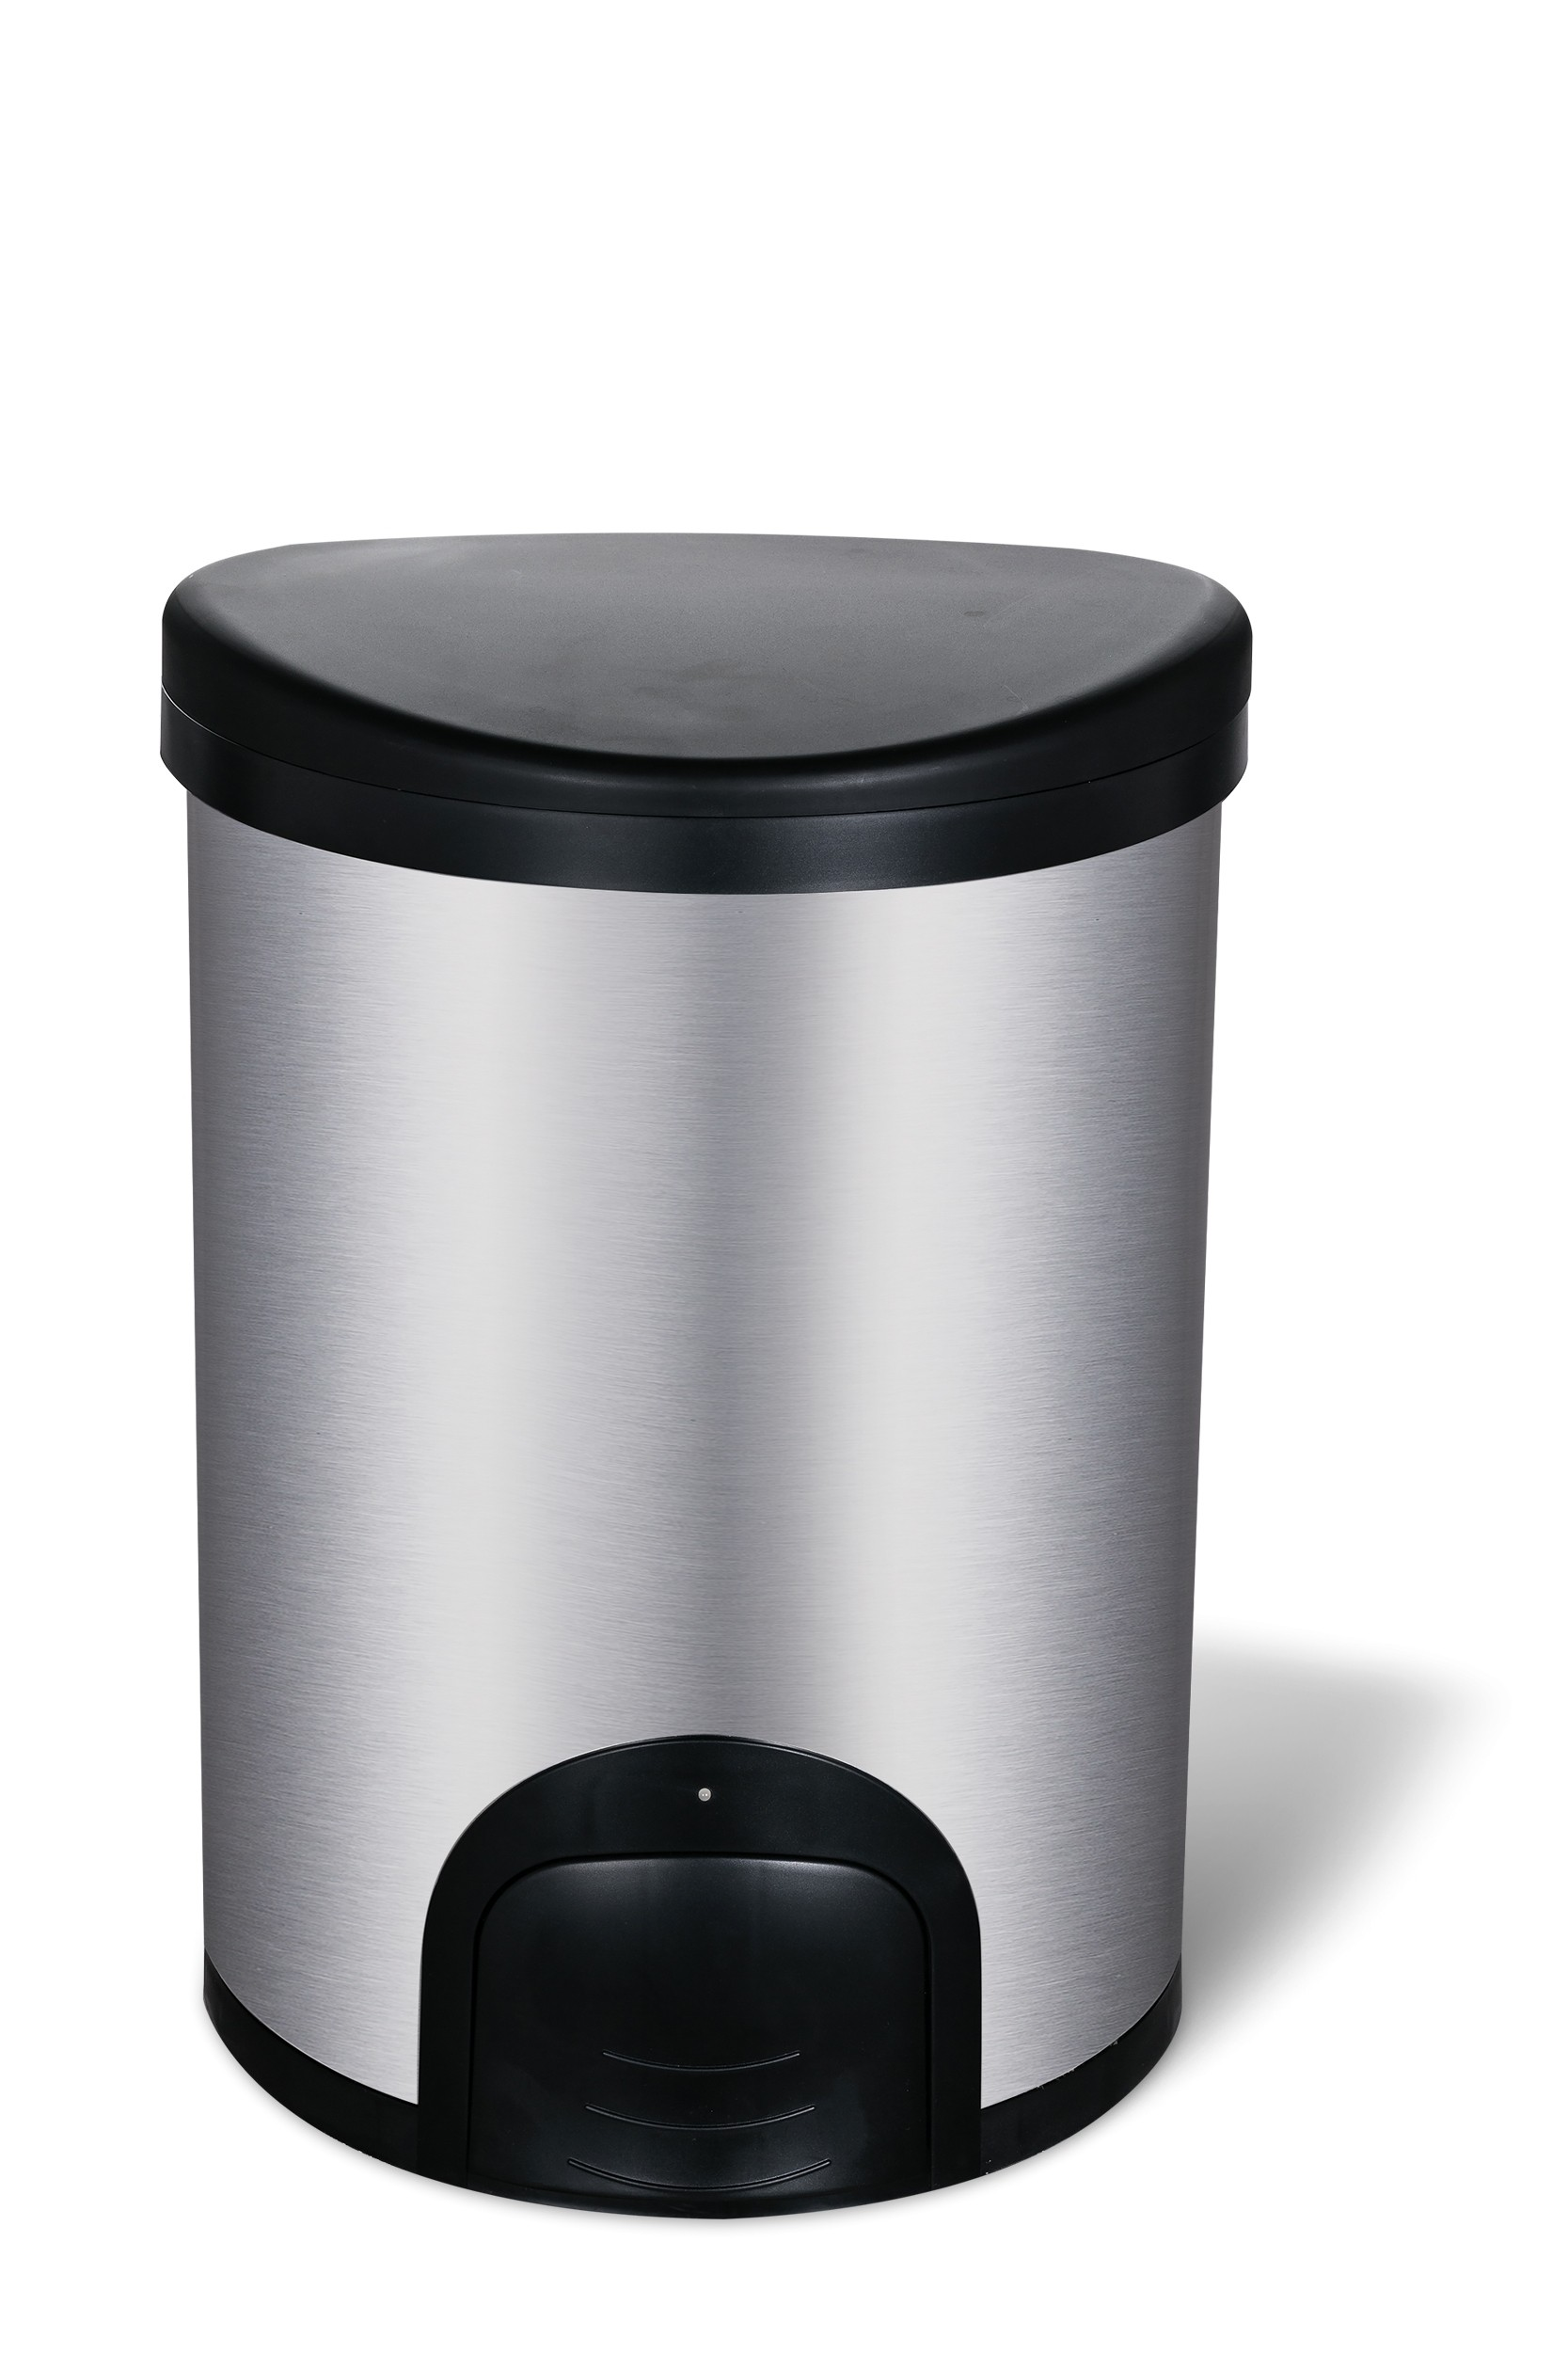 12L Toe tap hands, pedal & TOUCH free kitchen waste bin with self-opening and closing lid